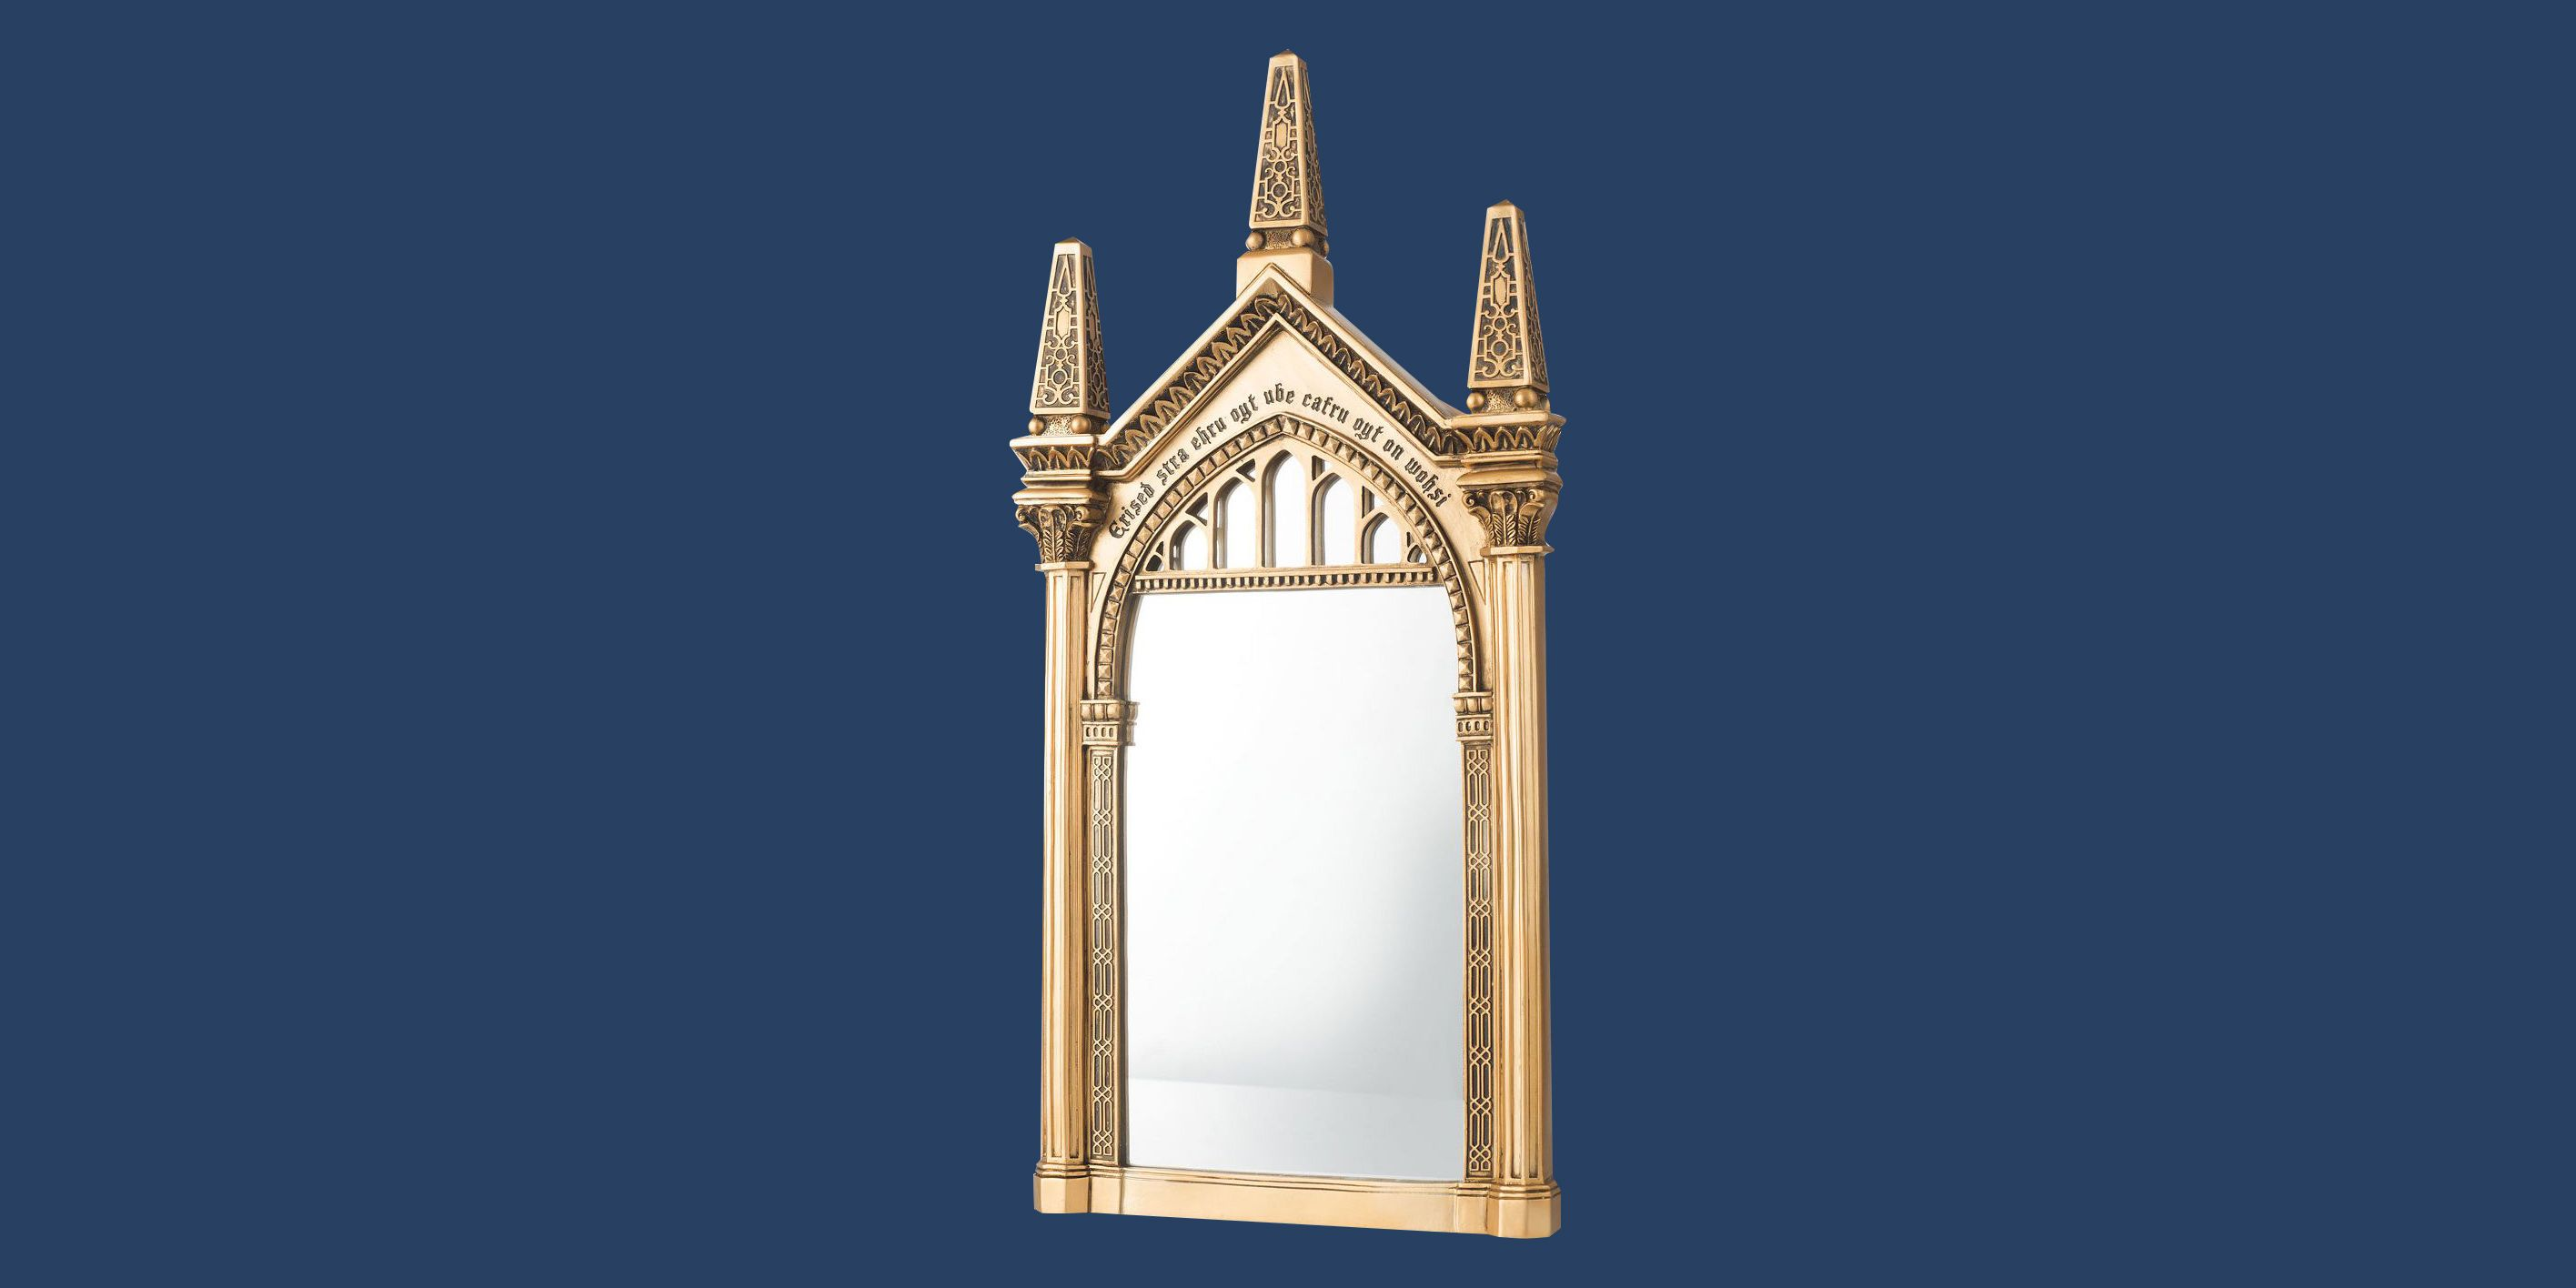 Harry Potter Fans Can See Their Hearts' Desires With This Erised Mirror from Target